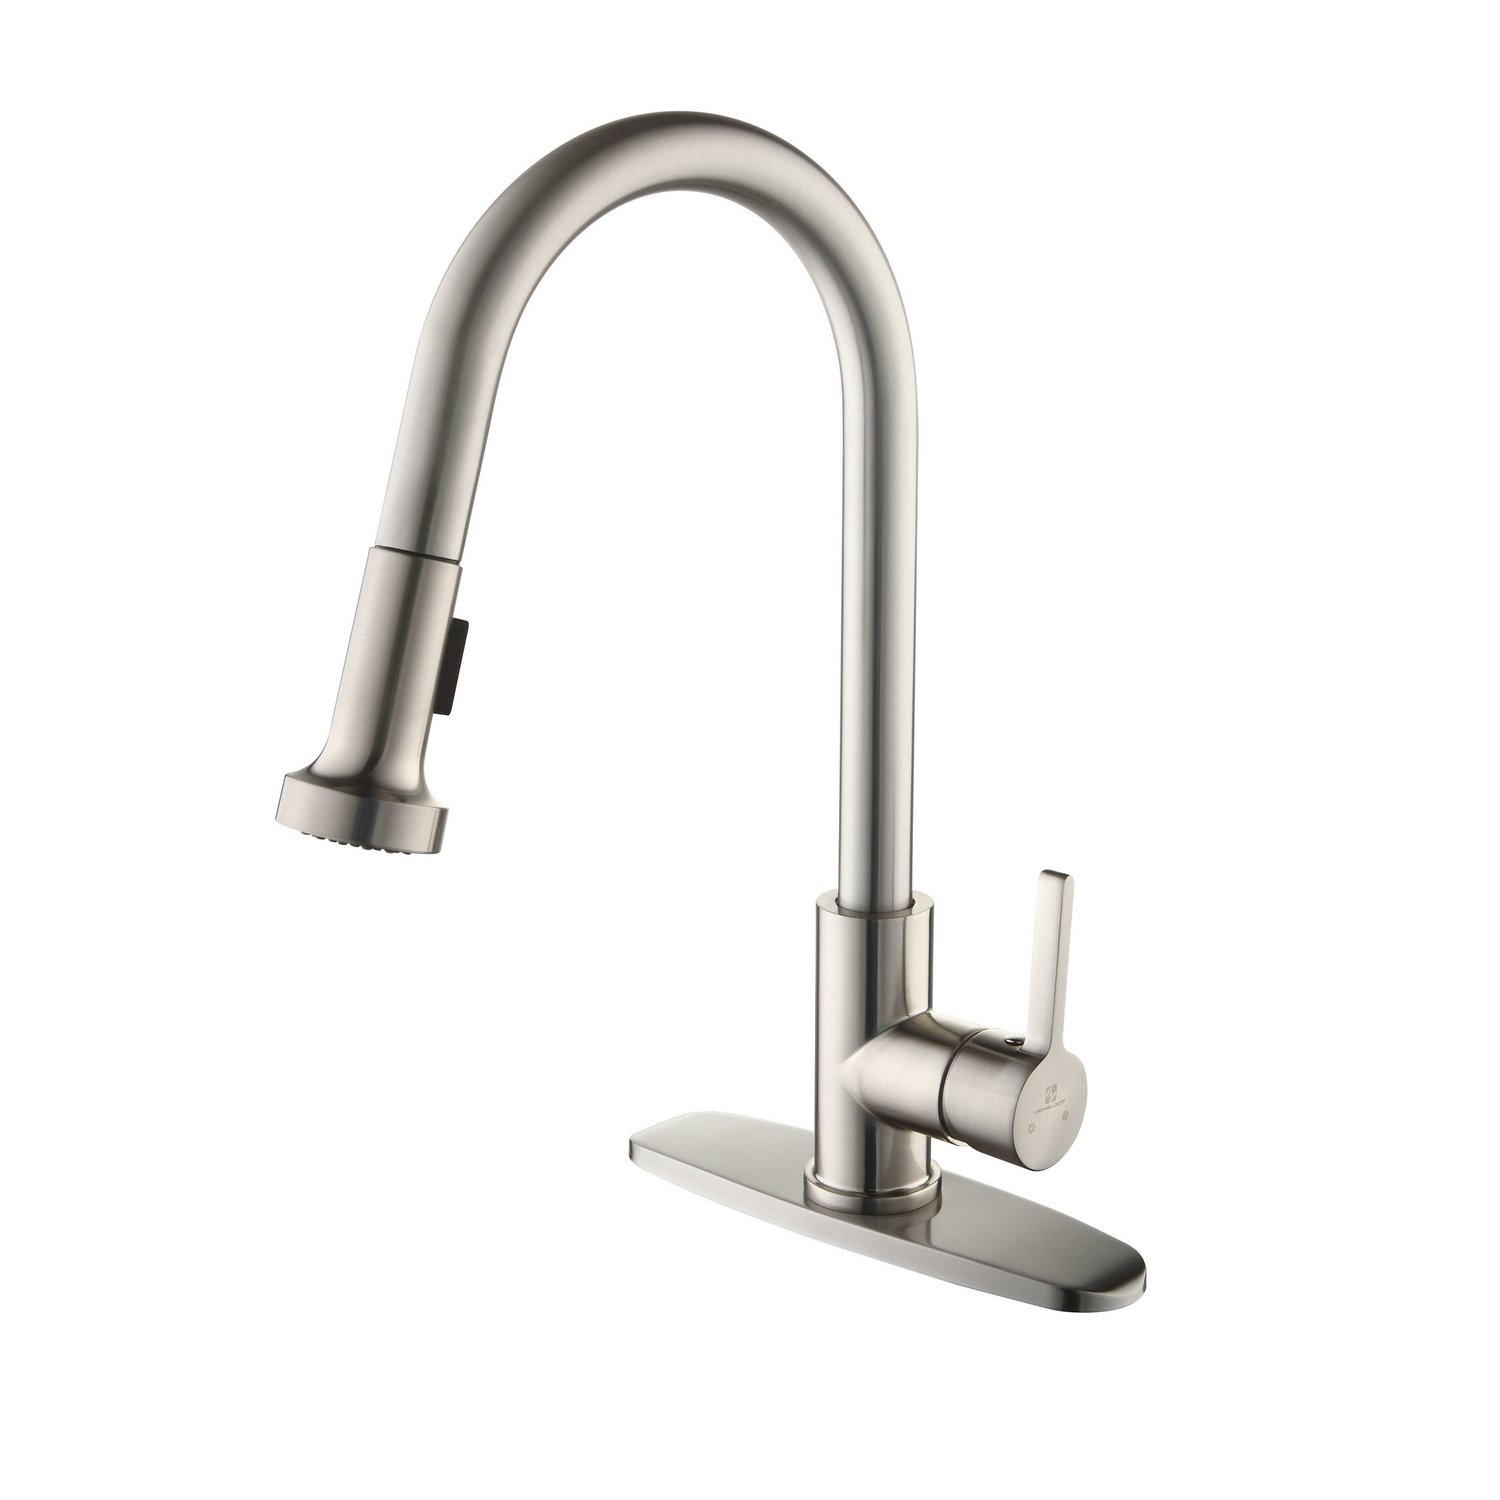 homelody commercial brushed nickel kitchen faucet cupc certificated kitchen faucets with pull down sprayer single handle laundry kitchen faucet with